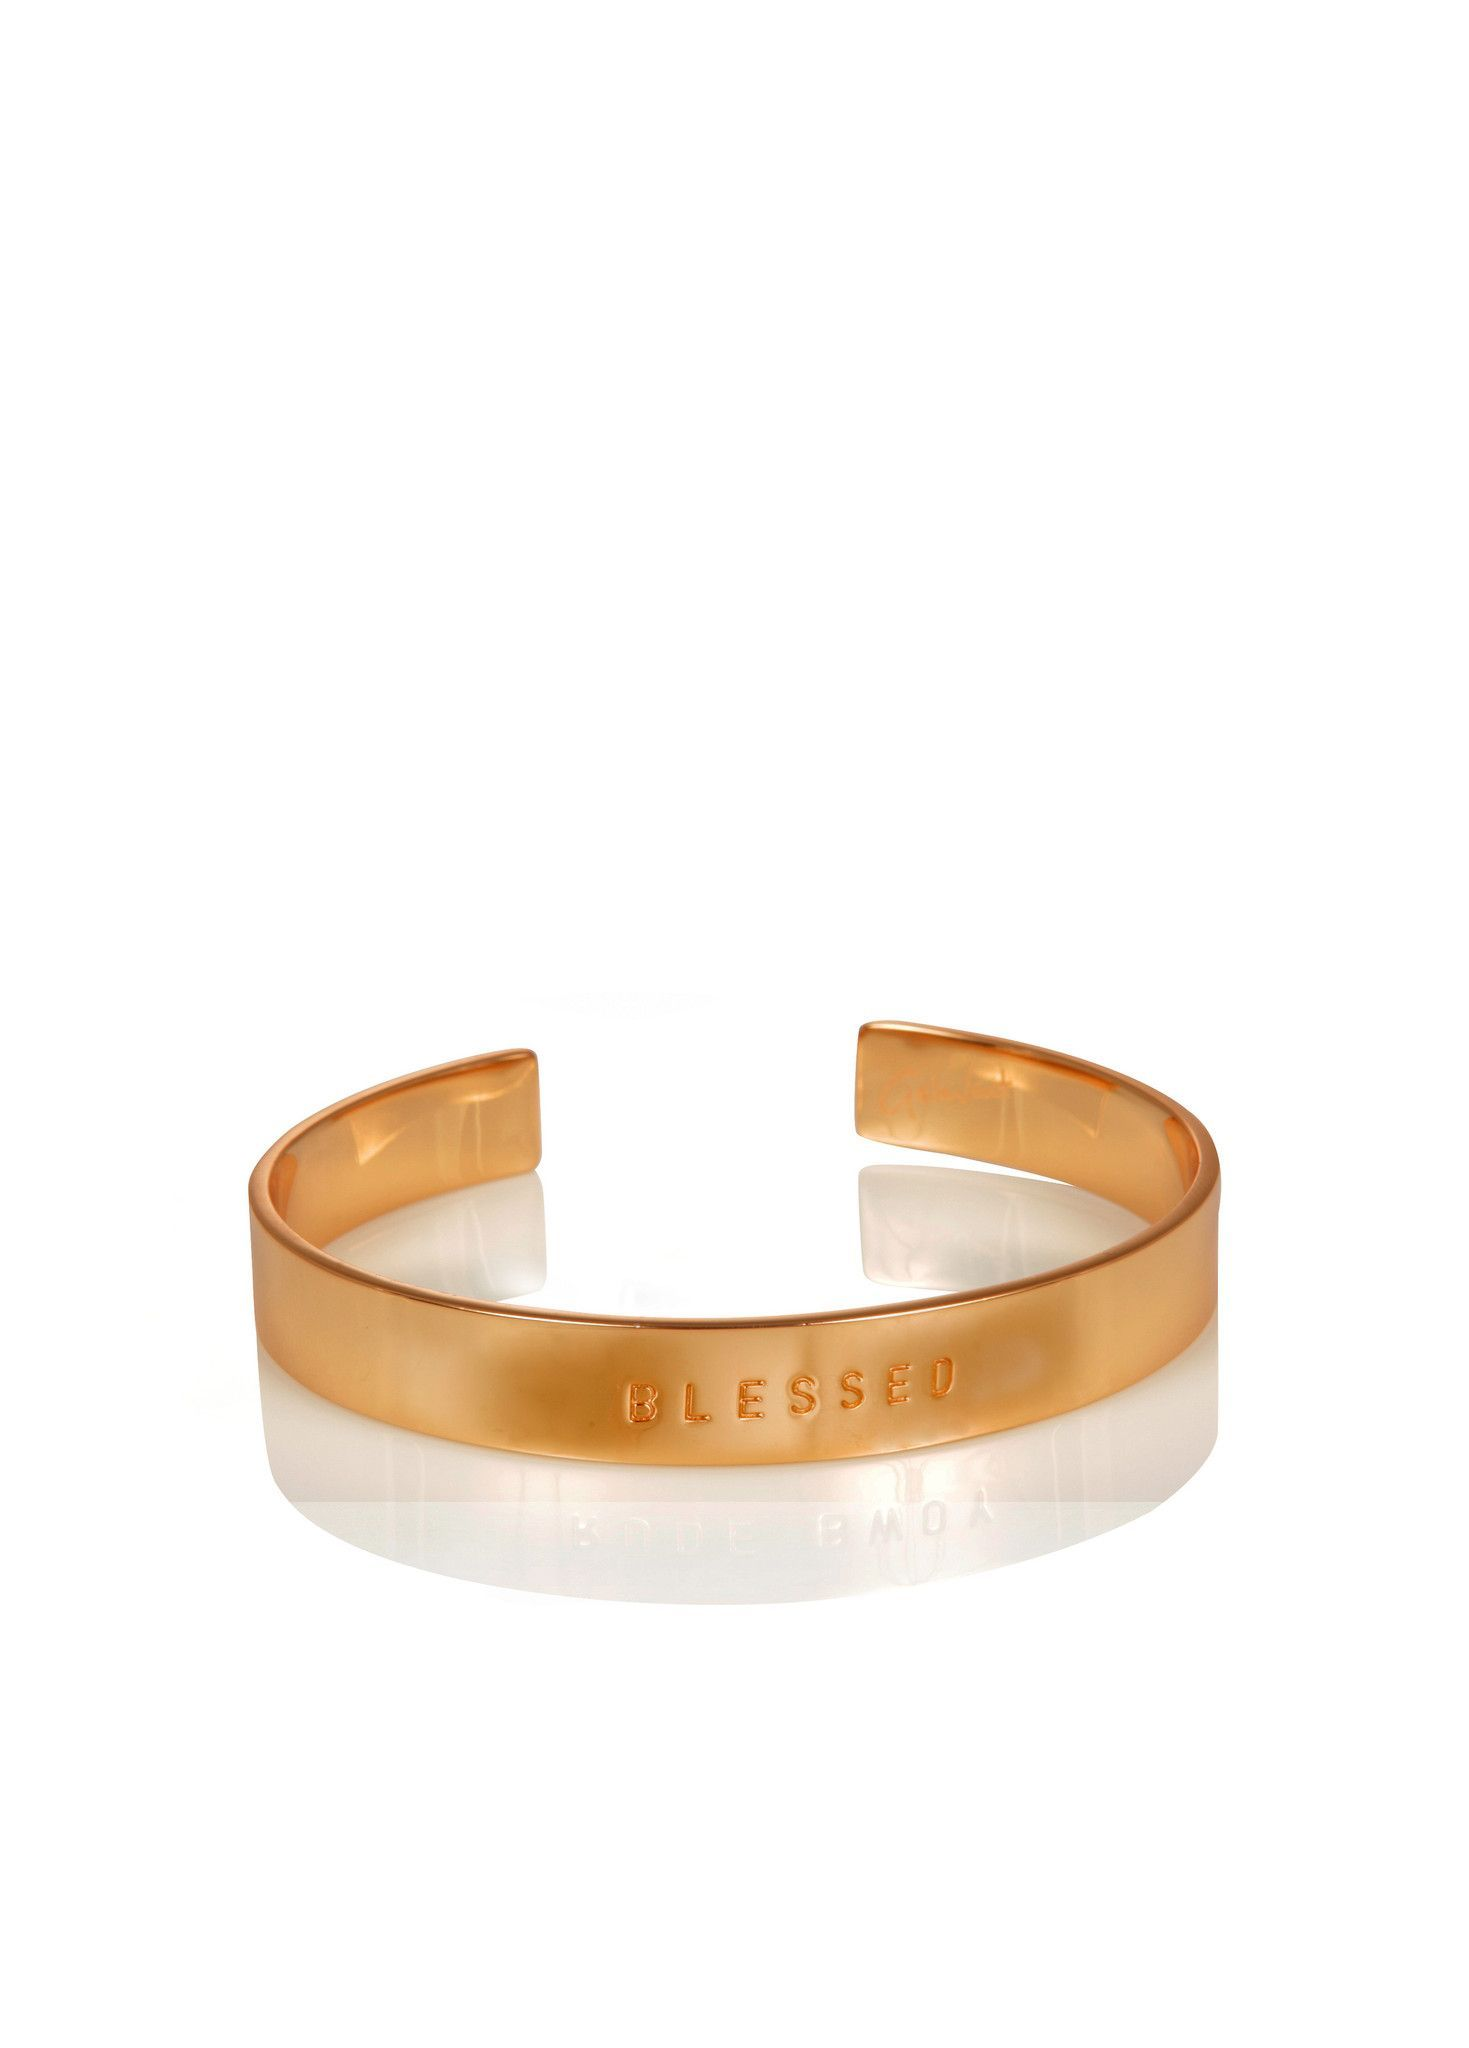 WORD UNISEX CUFF - BLESSED